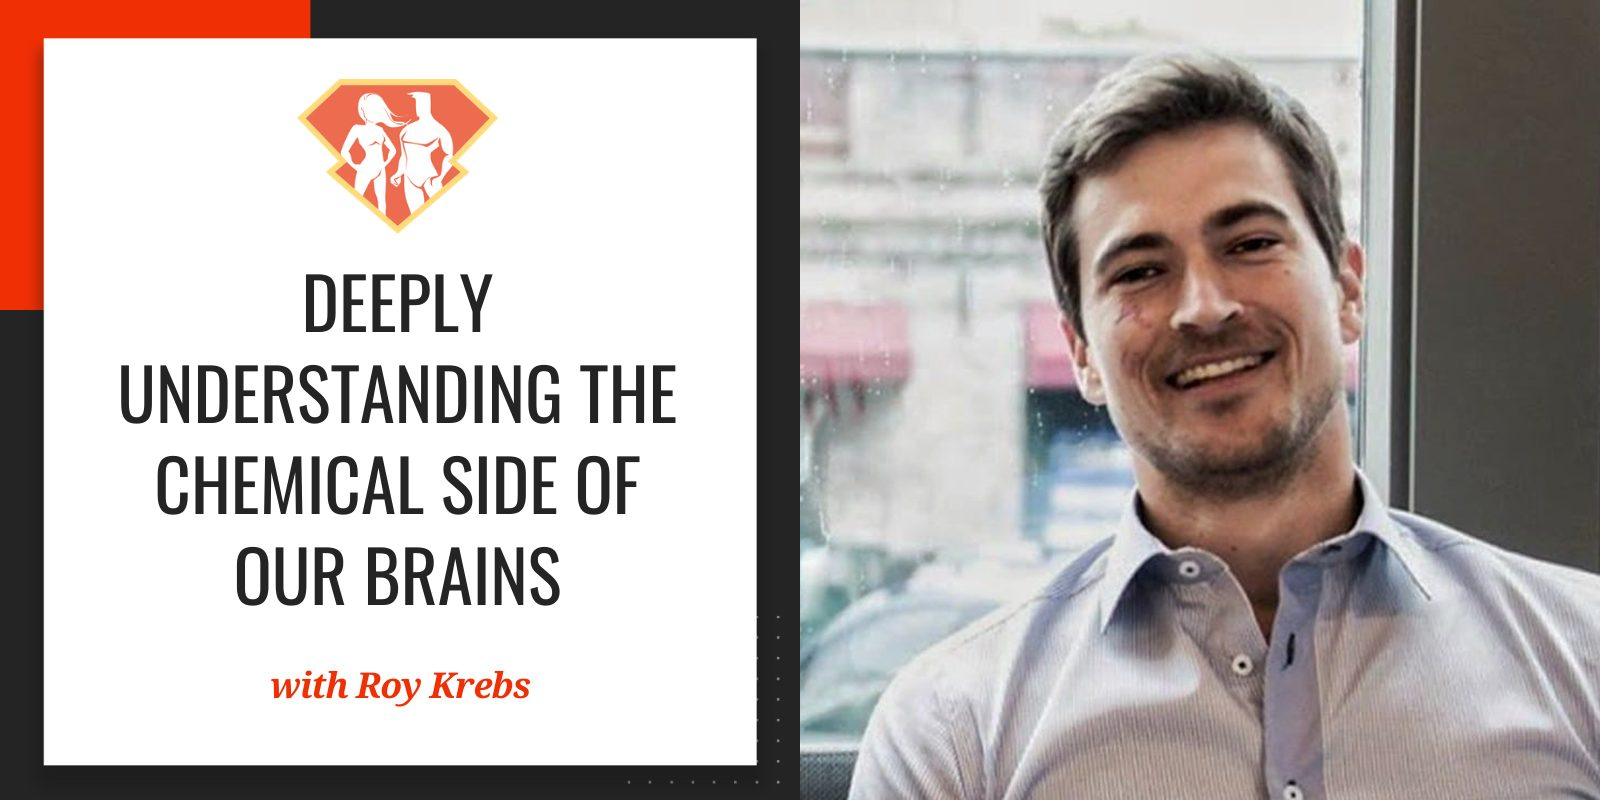 In this episode with Roy Krebs, we go deep into the chemical side of our brains, and we discover which supplements can improve our mental performance.